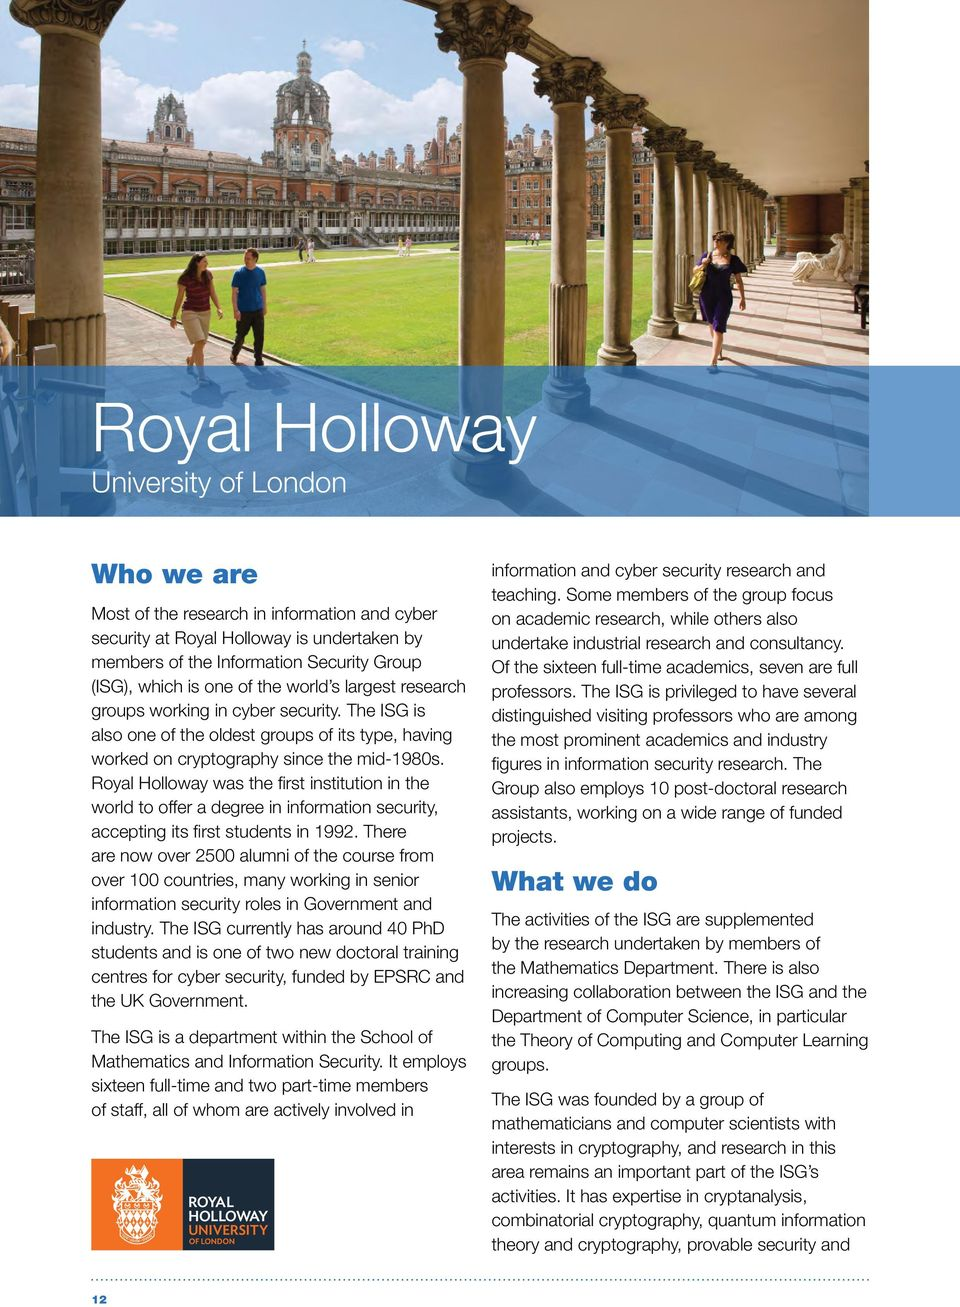 Royal Holloway was the first institution in the world to offer a degree in information security, accepting its first students in 1992.